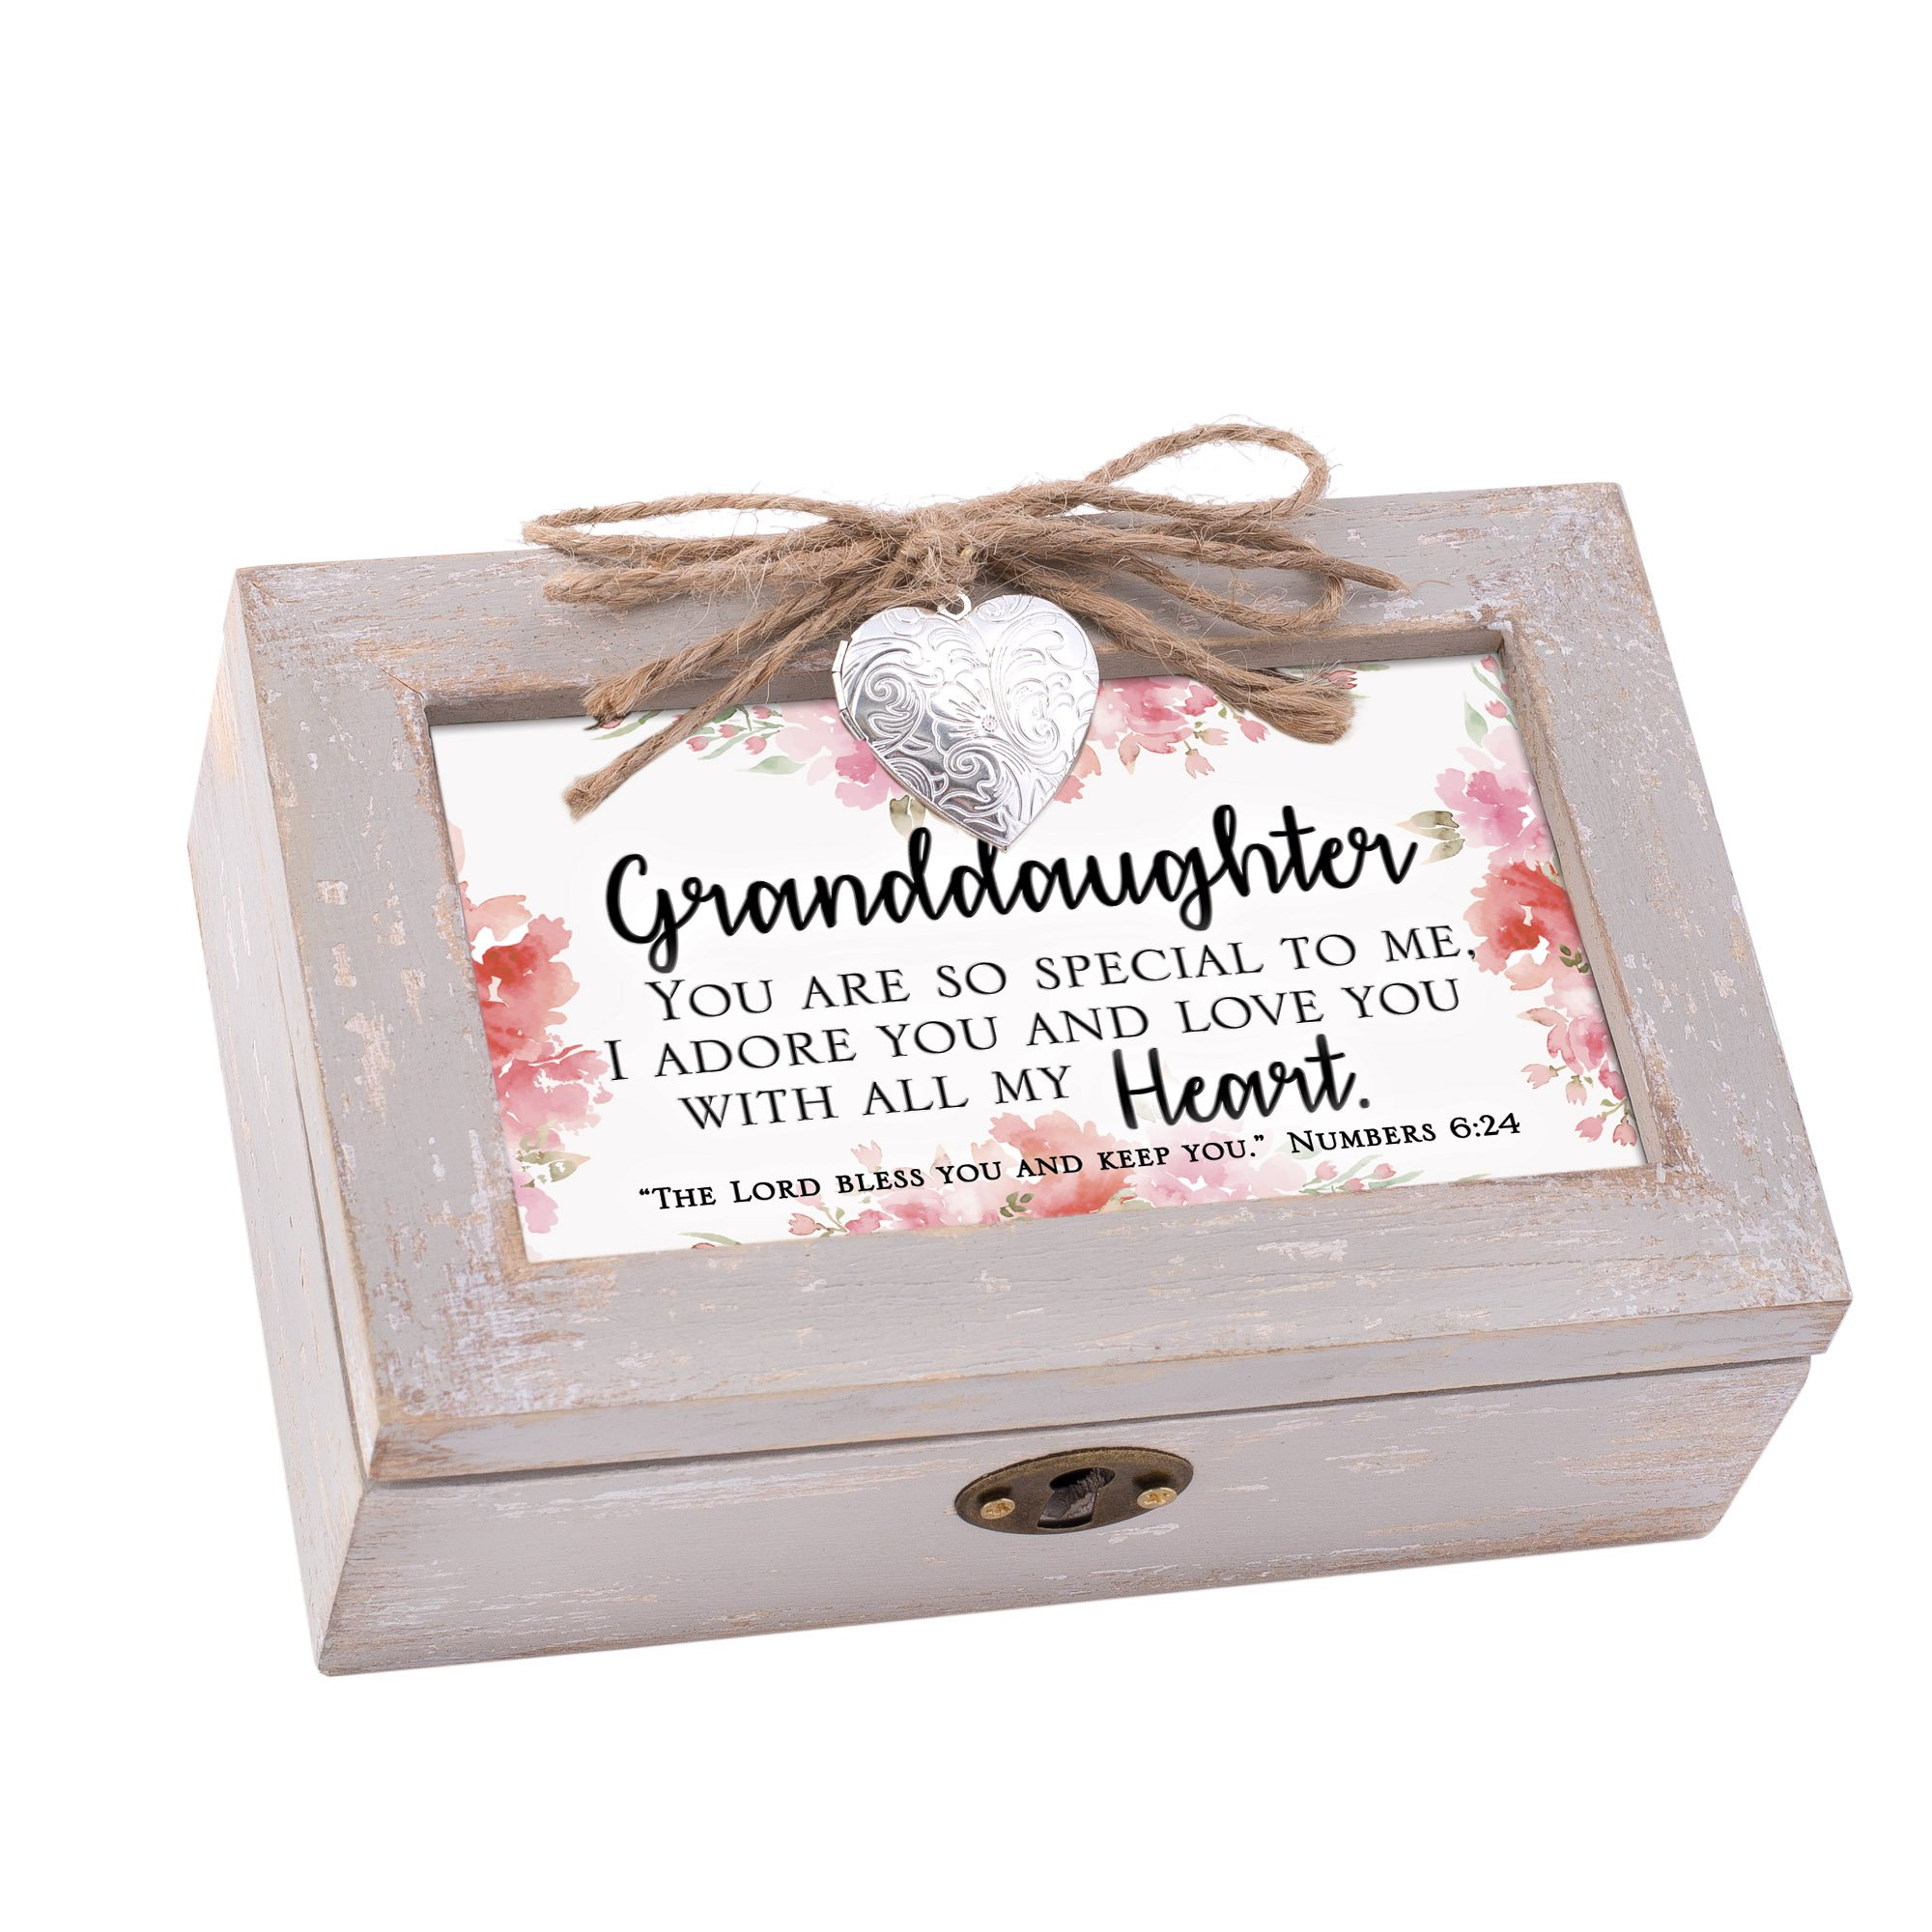 Cottage Garden Granddaughter Natural Taupe Wood Locket Petite Music Box Plays How Great Thou Art